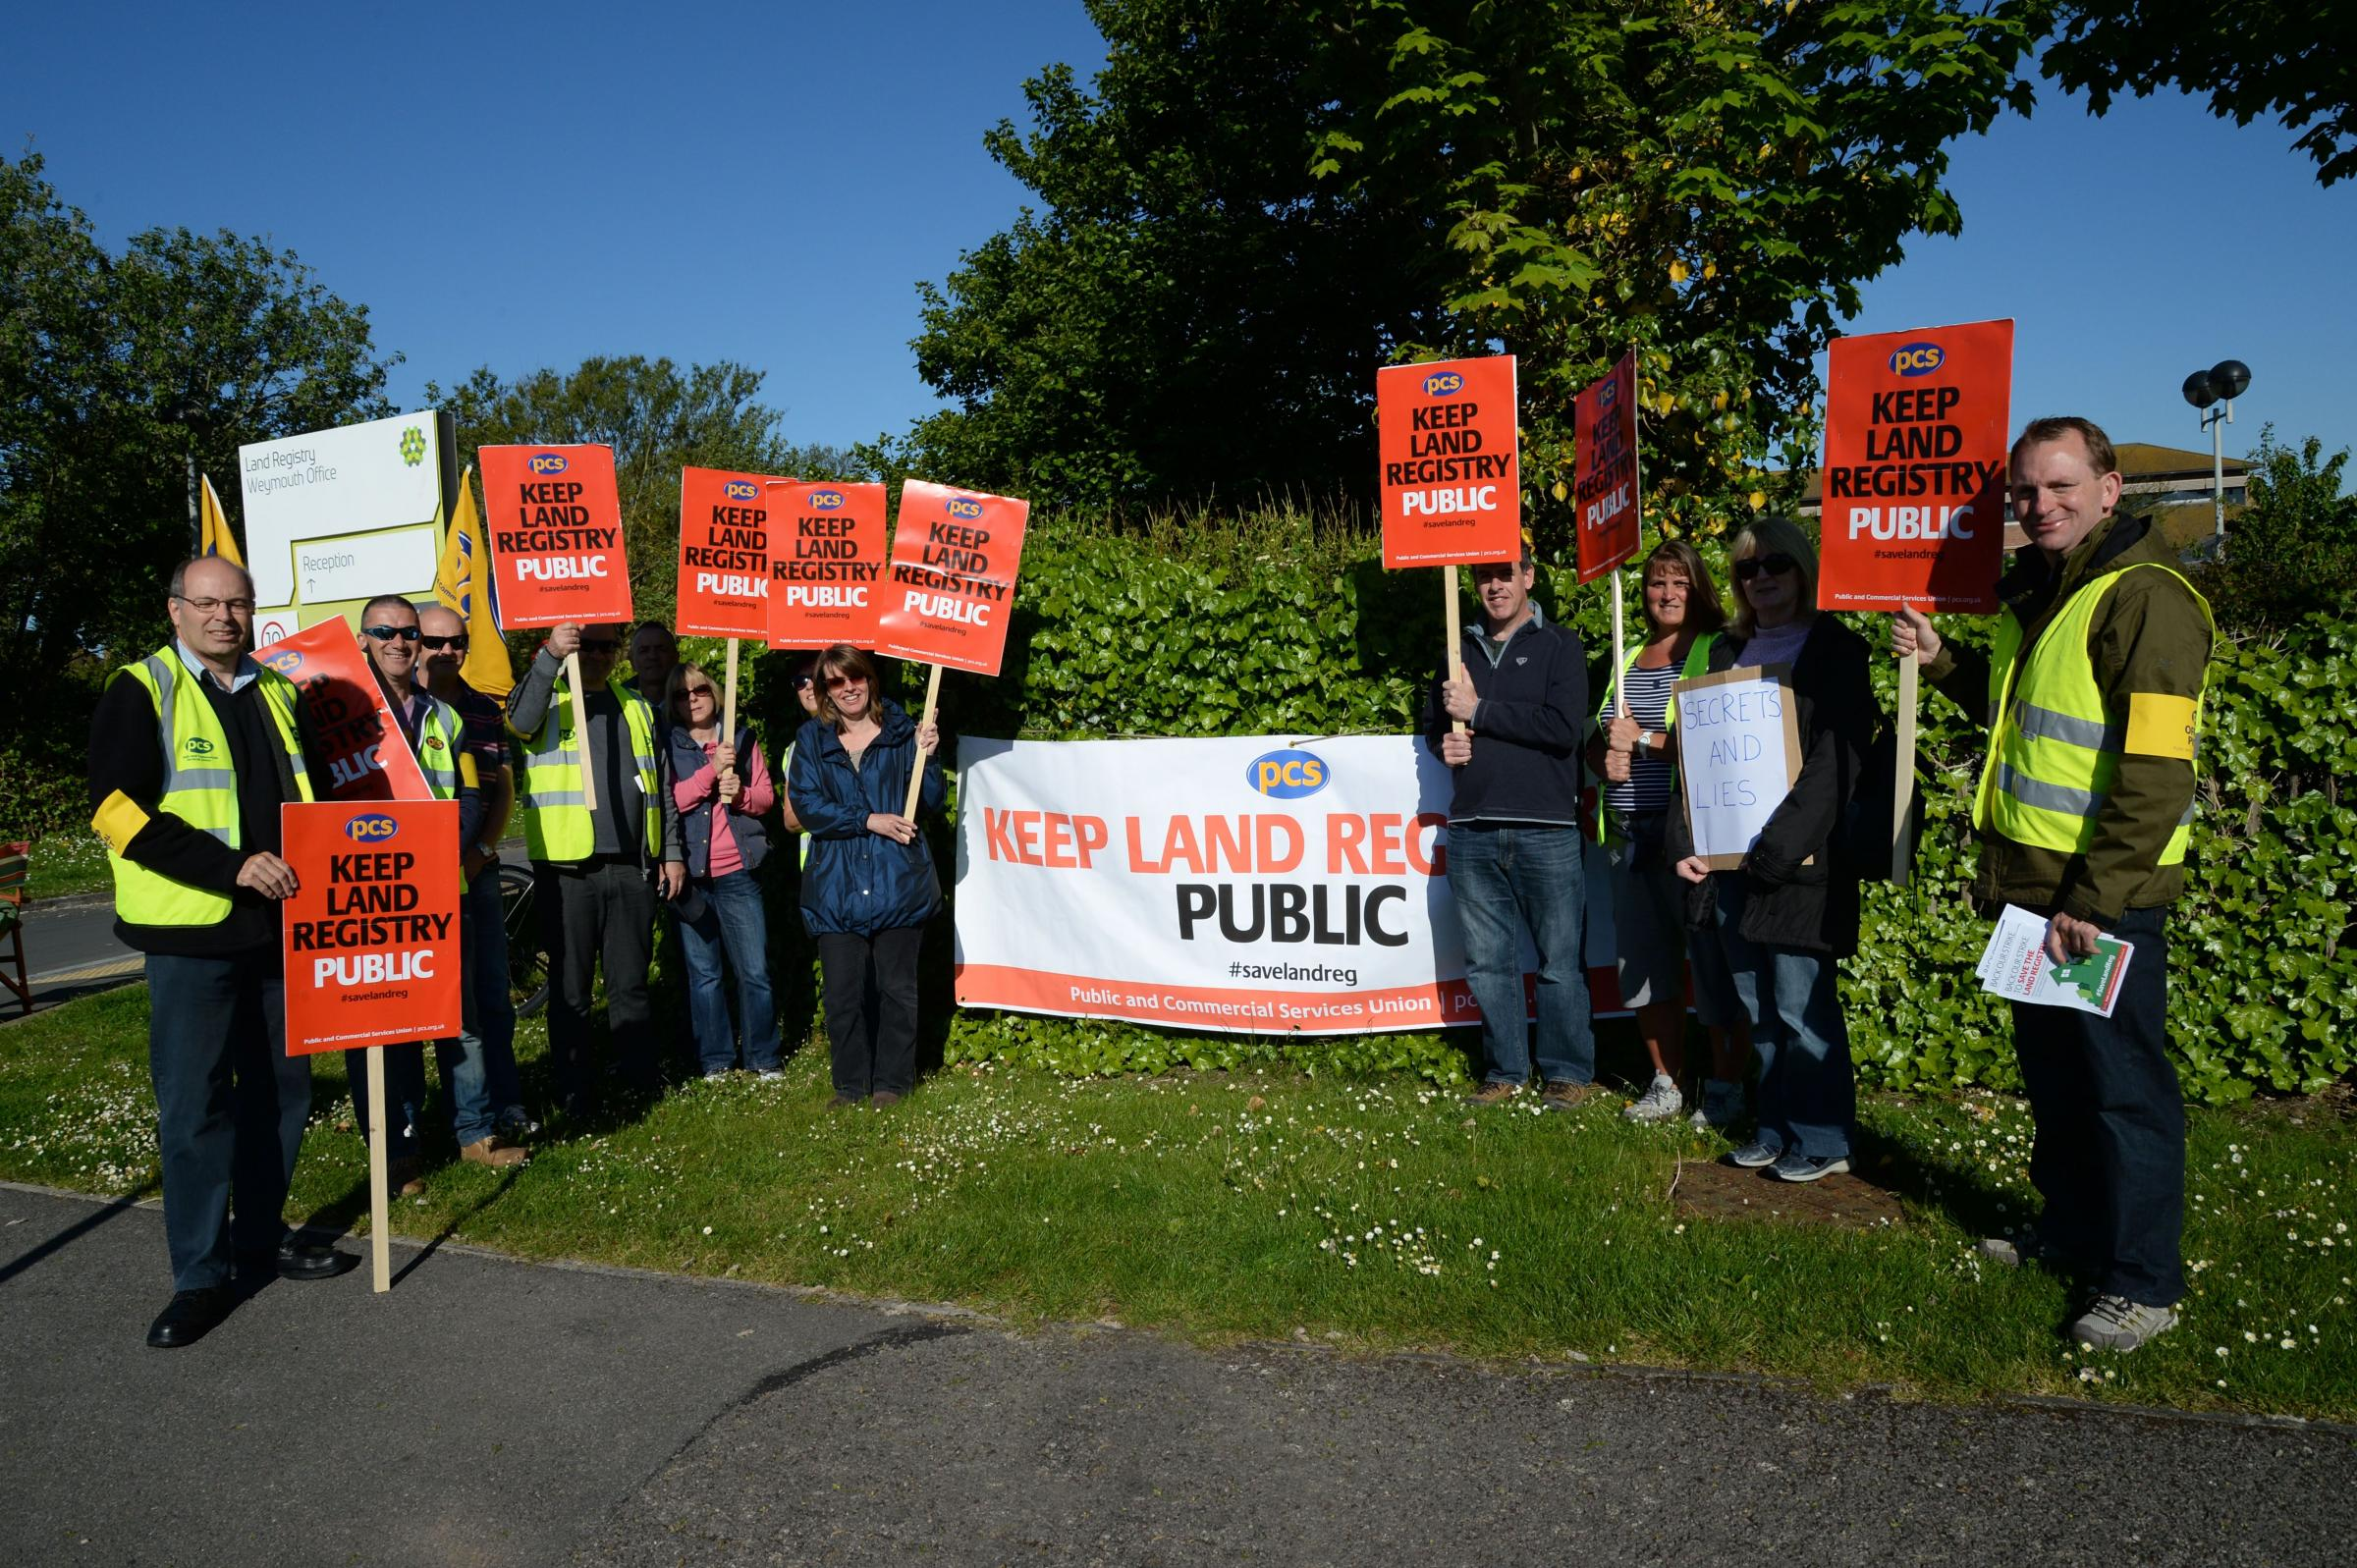 Union members strike at Land Registry over fears about privatisation and job cuts